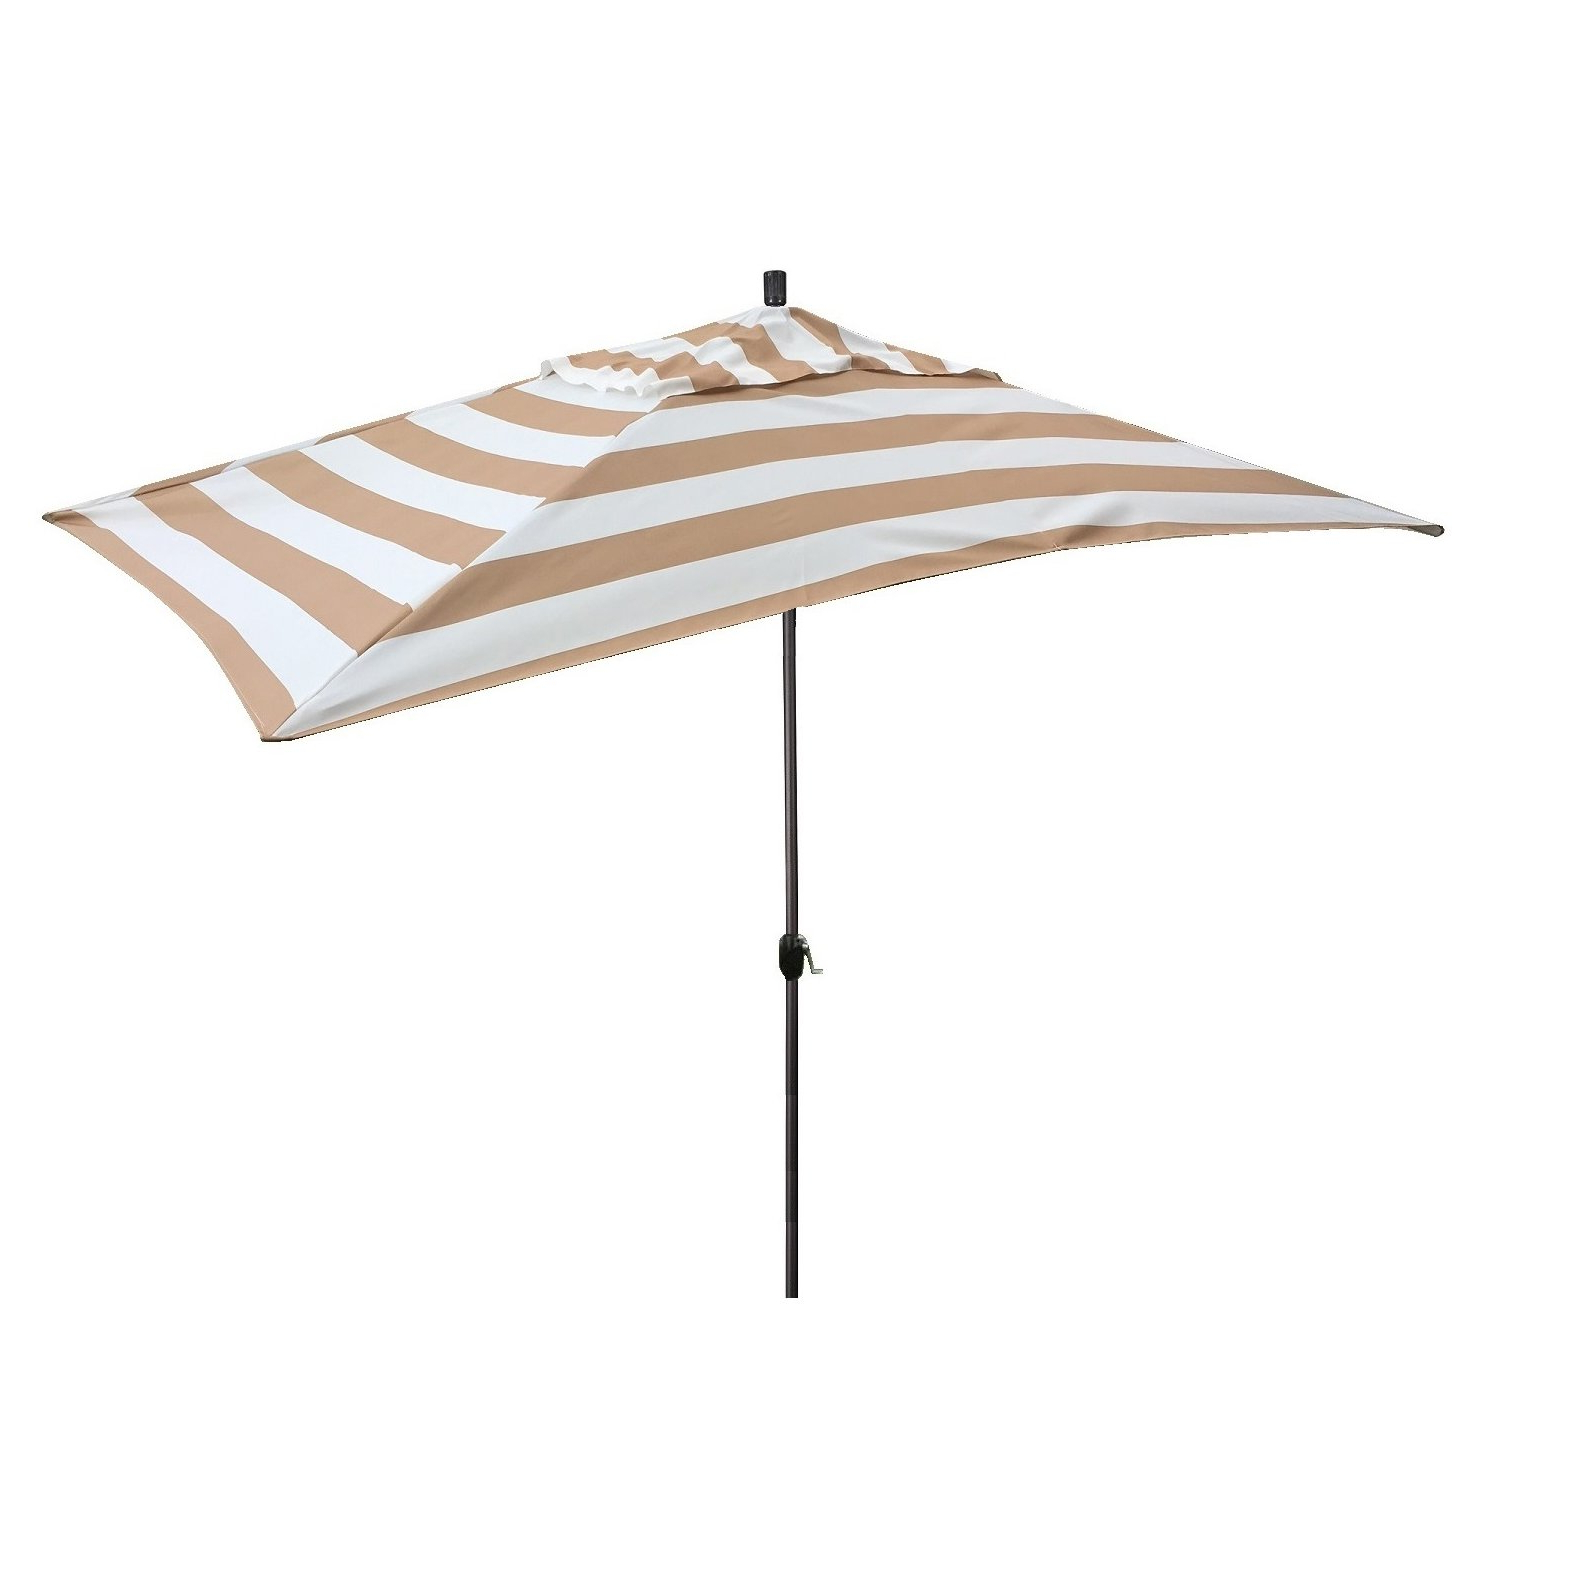 2020 Jalynn 10' X 6' Rectangular Market Umbrella Within Gries Rectangular Market Umbrellas (View 2 of 20)